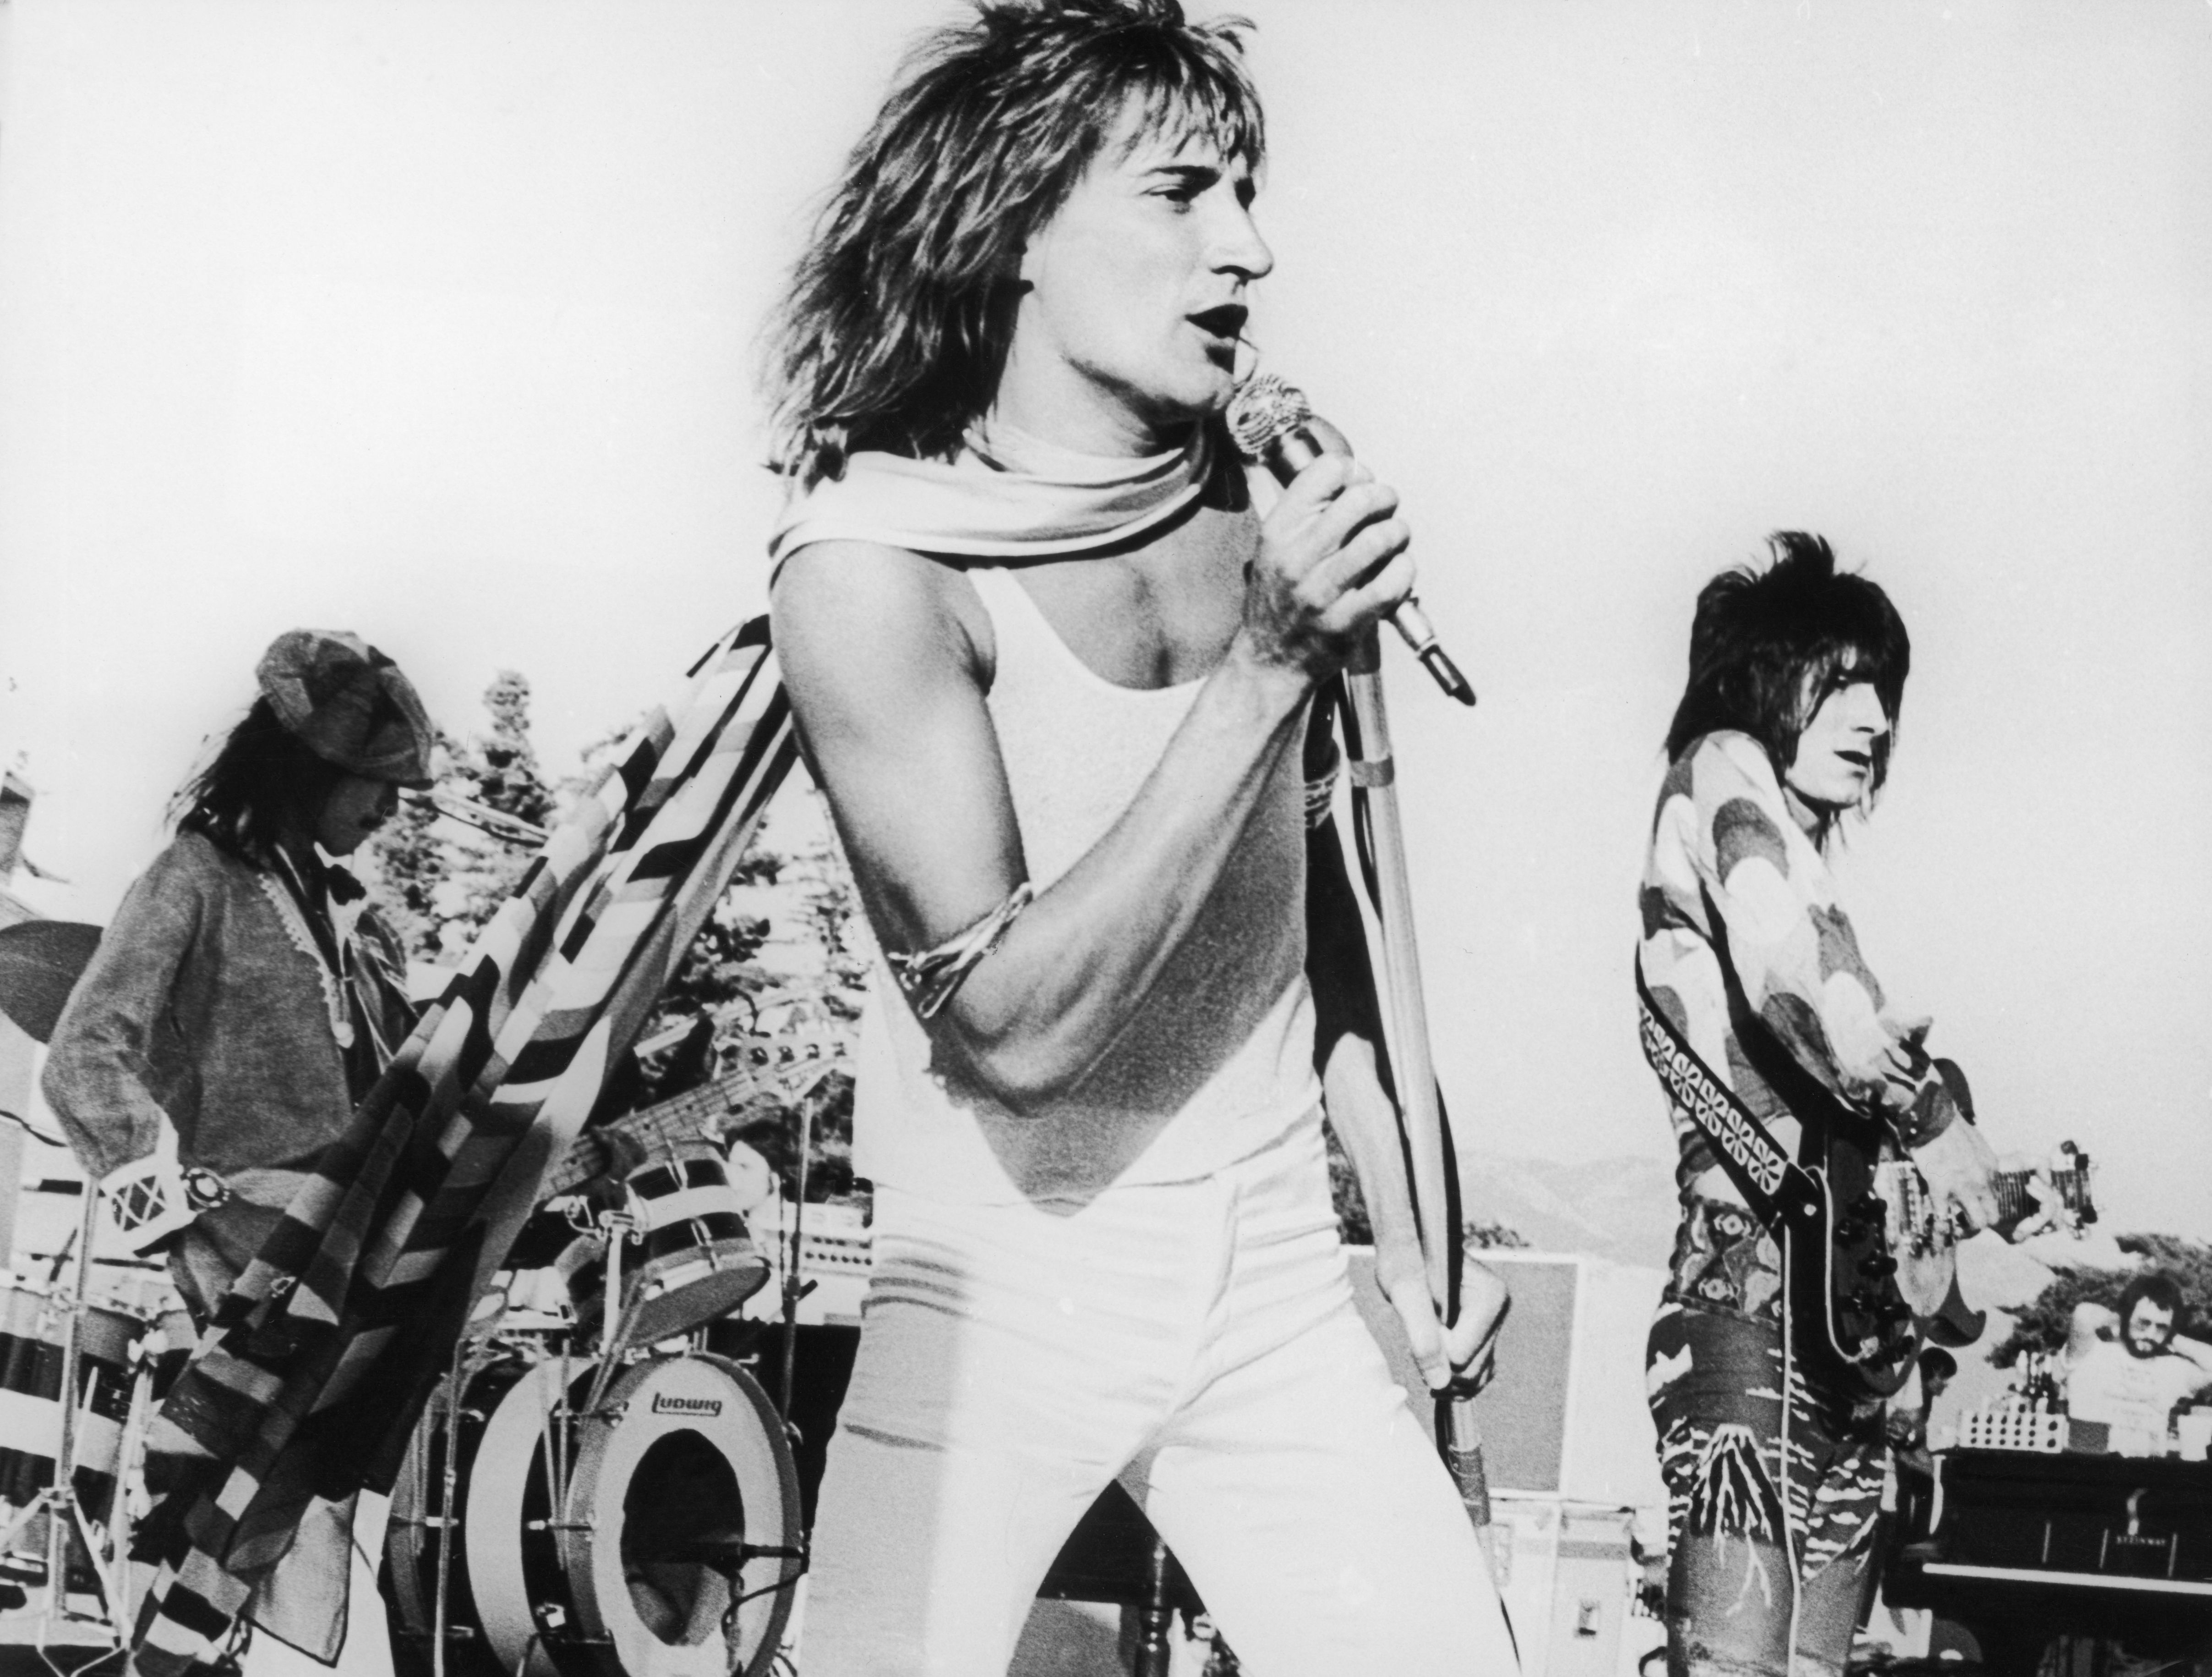 Pin by Steve Hadgisava on Long live rock Rod stewart